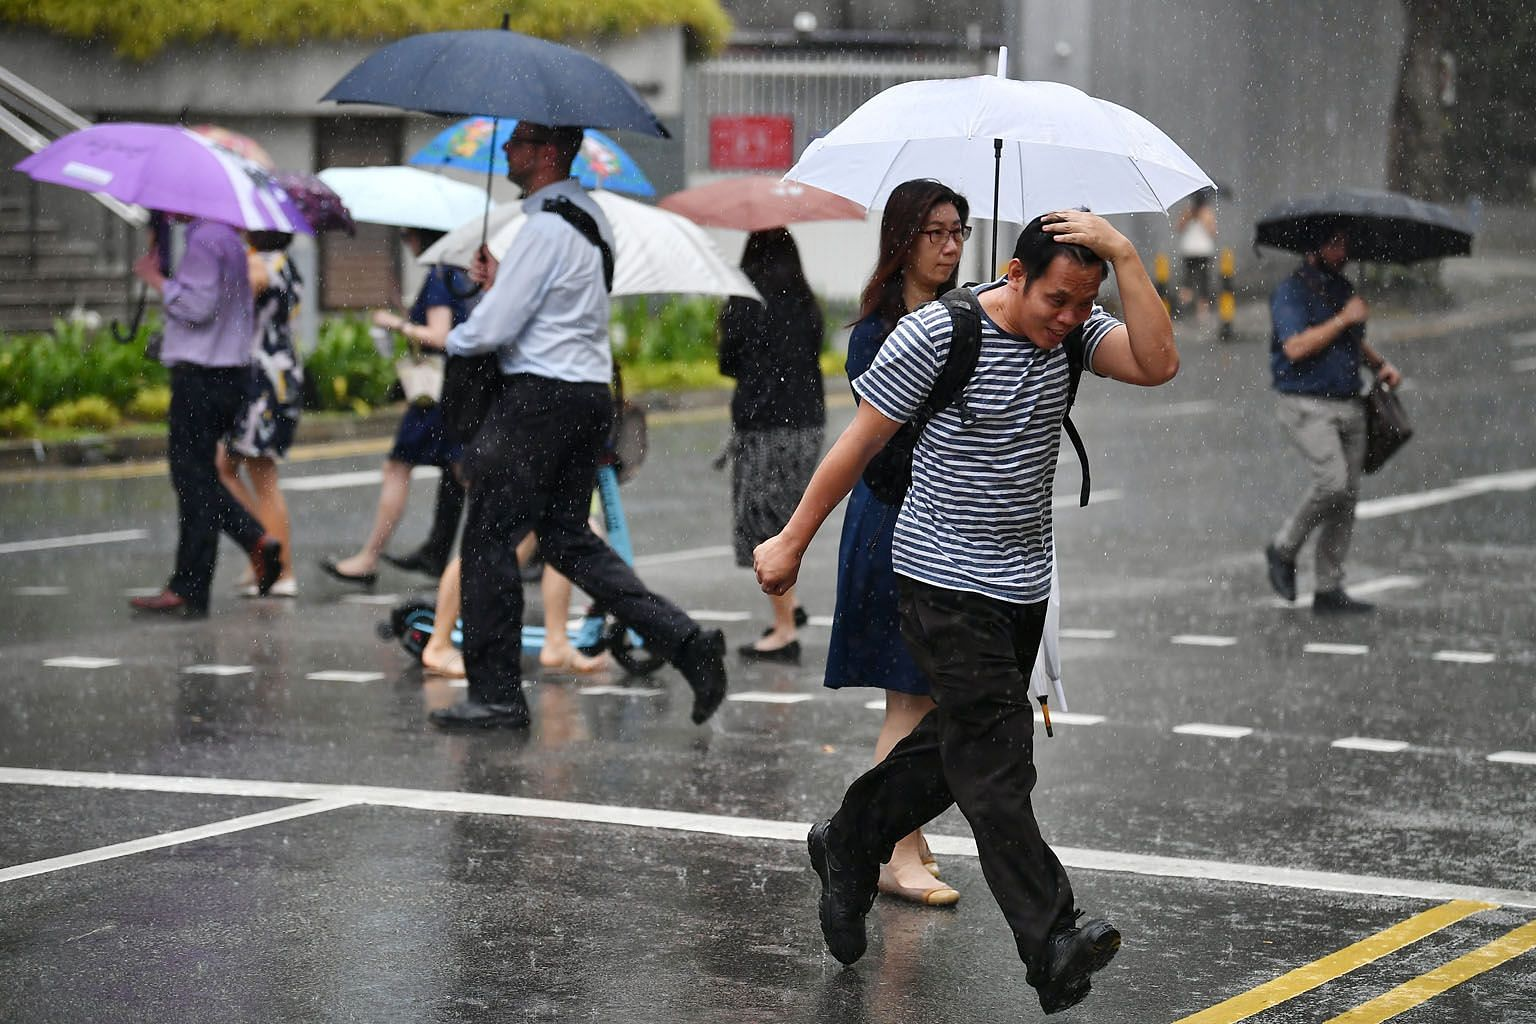 In the second half of this month, showers are forecast to take place mostly in the late morning and in the early afternoon. On some days, the showers are expected to extend into the late afternoon and evening. ST PHOTO: LIM YAOHUI